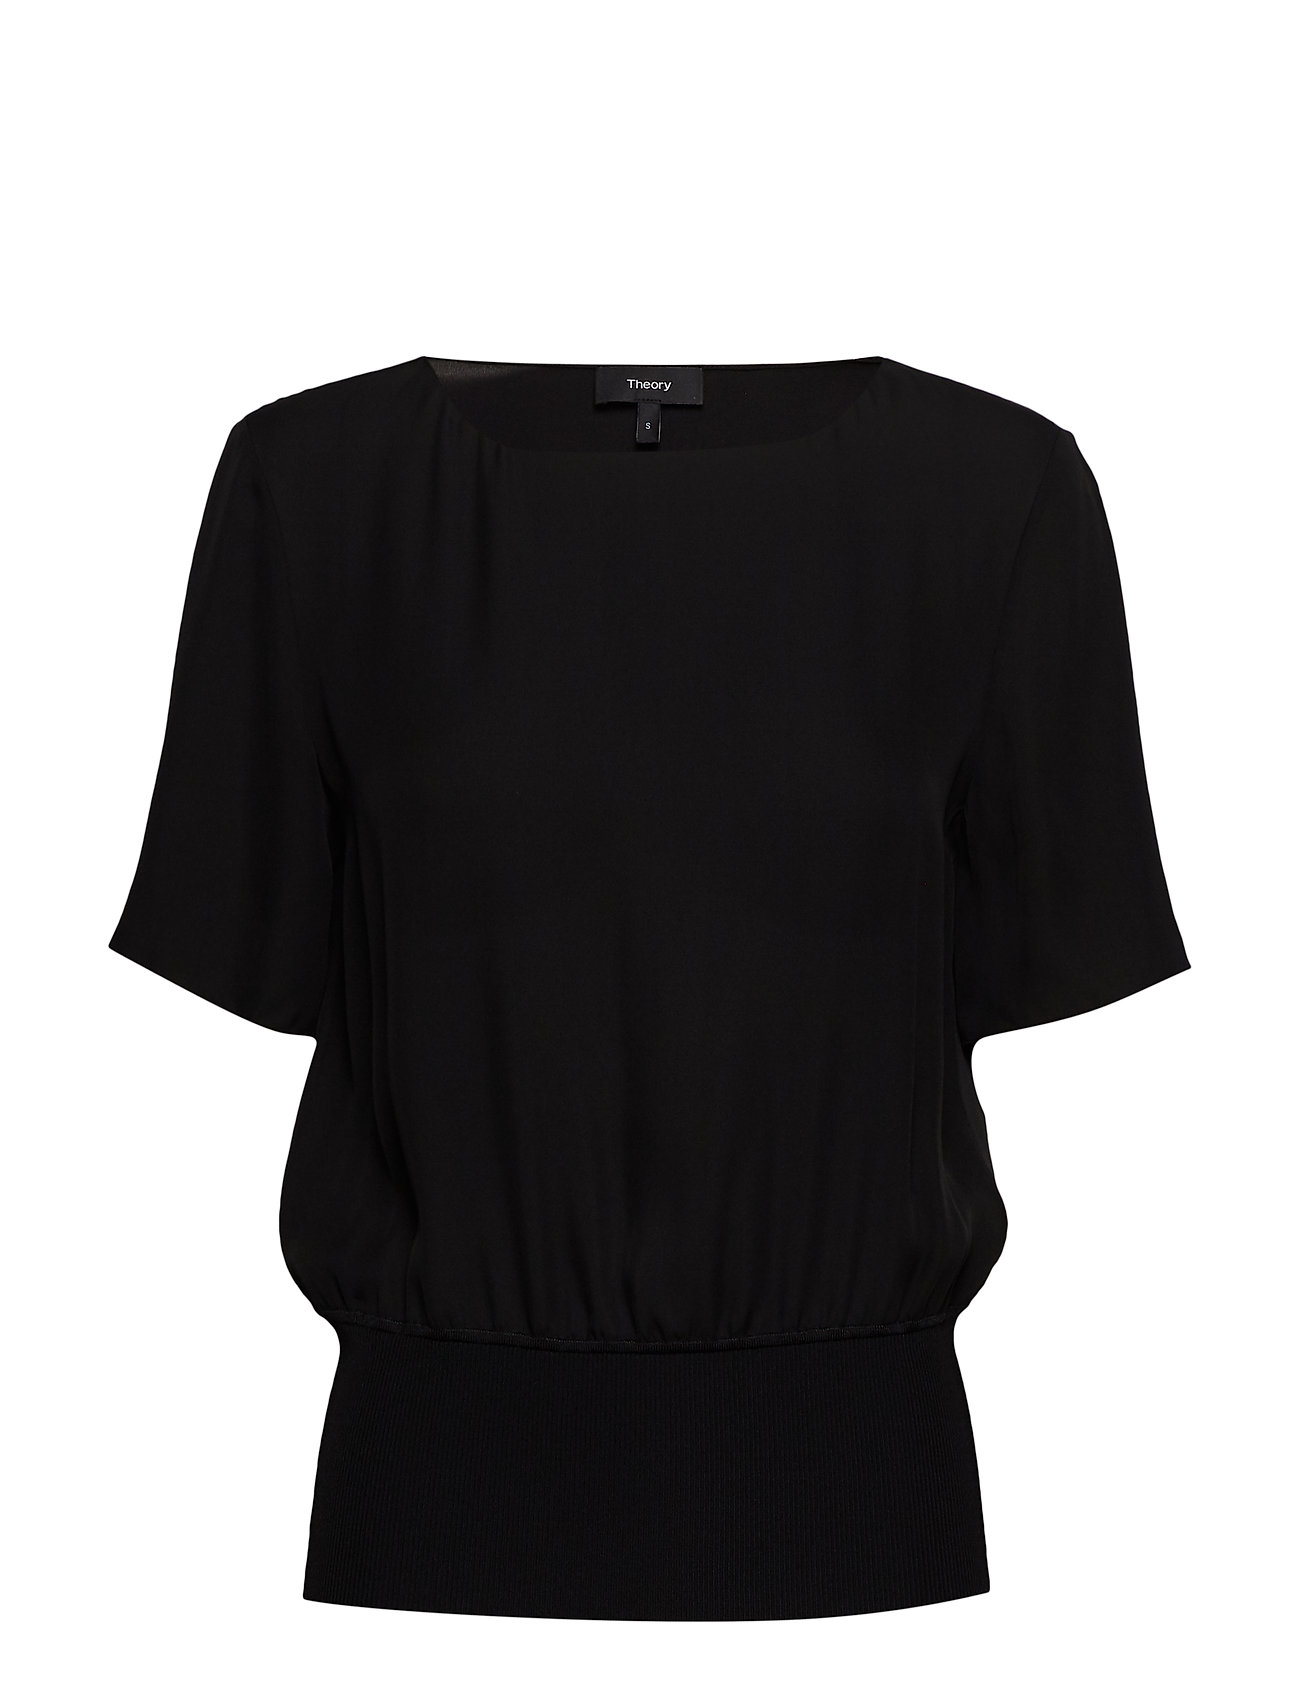 Theory SS RIB WB TOP.SILK C - 001.BLACK